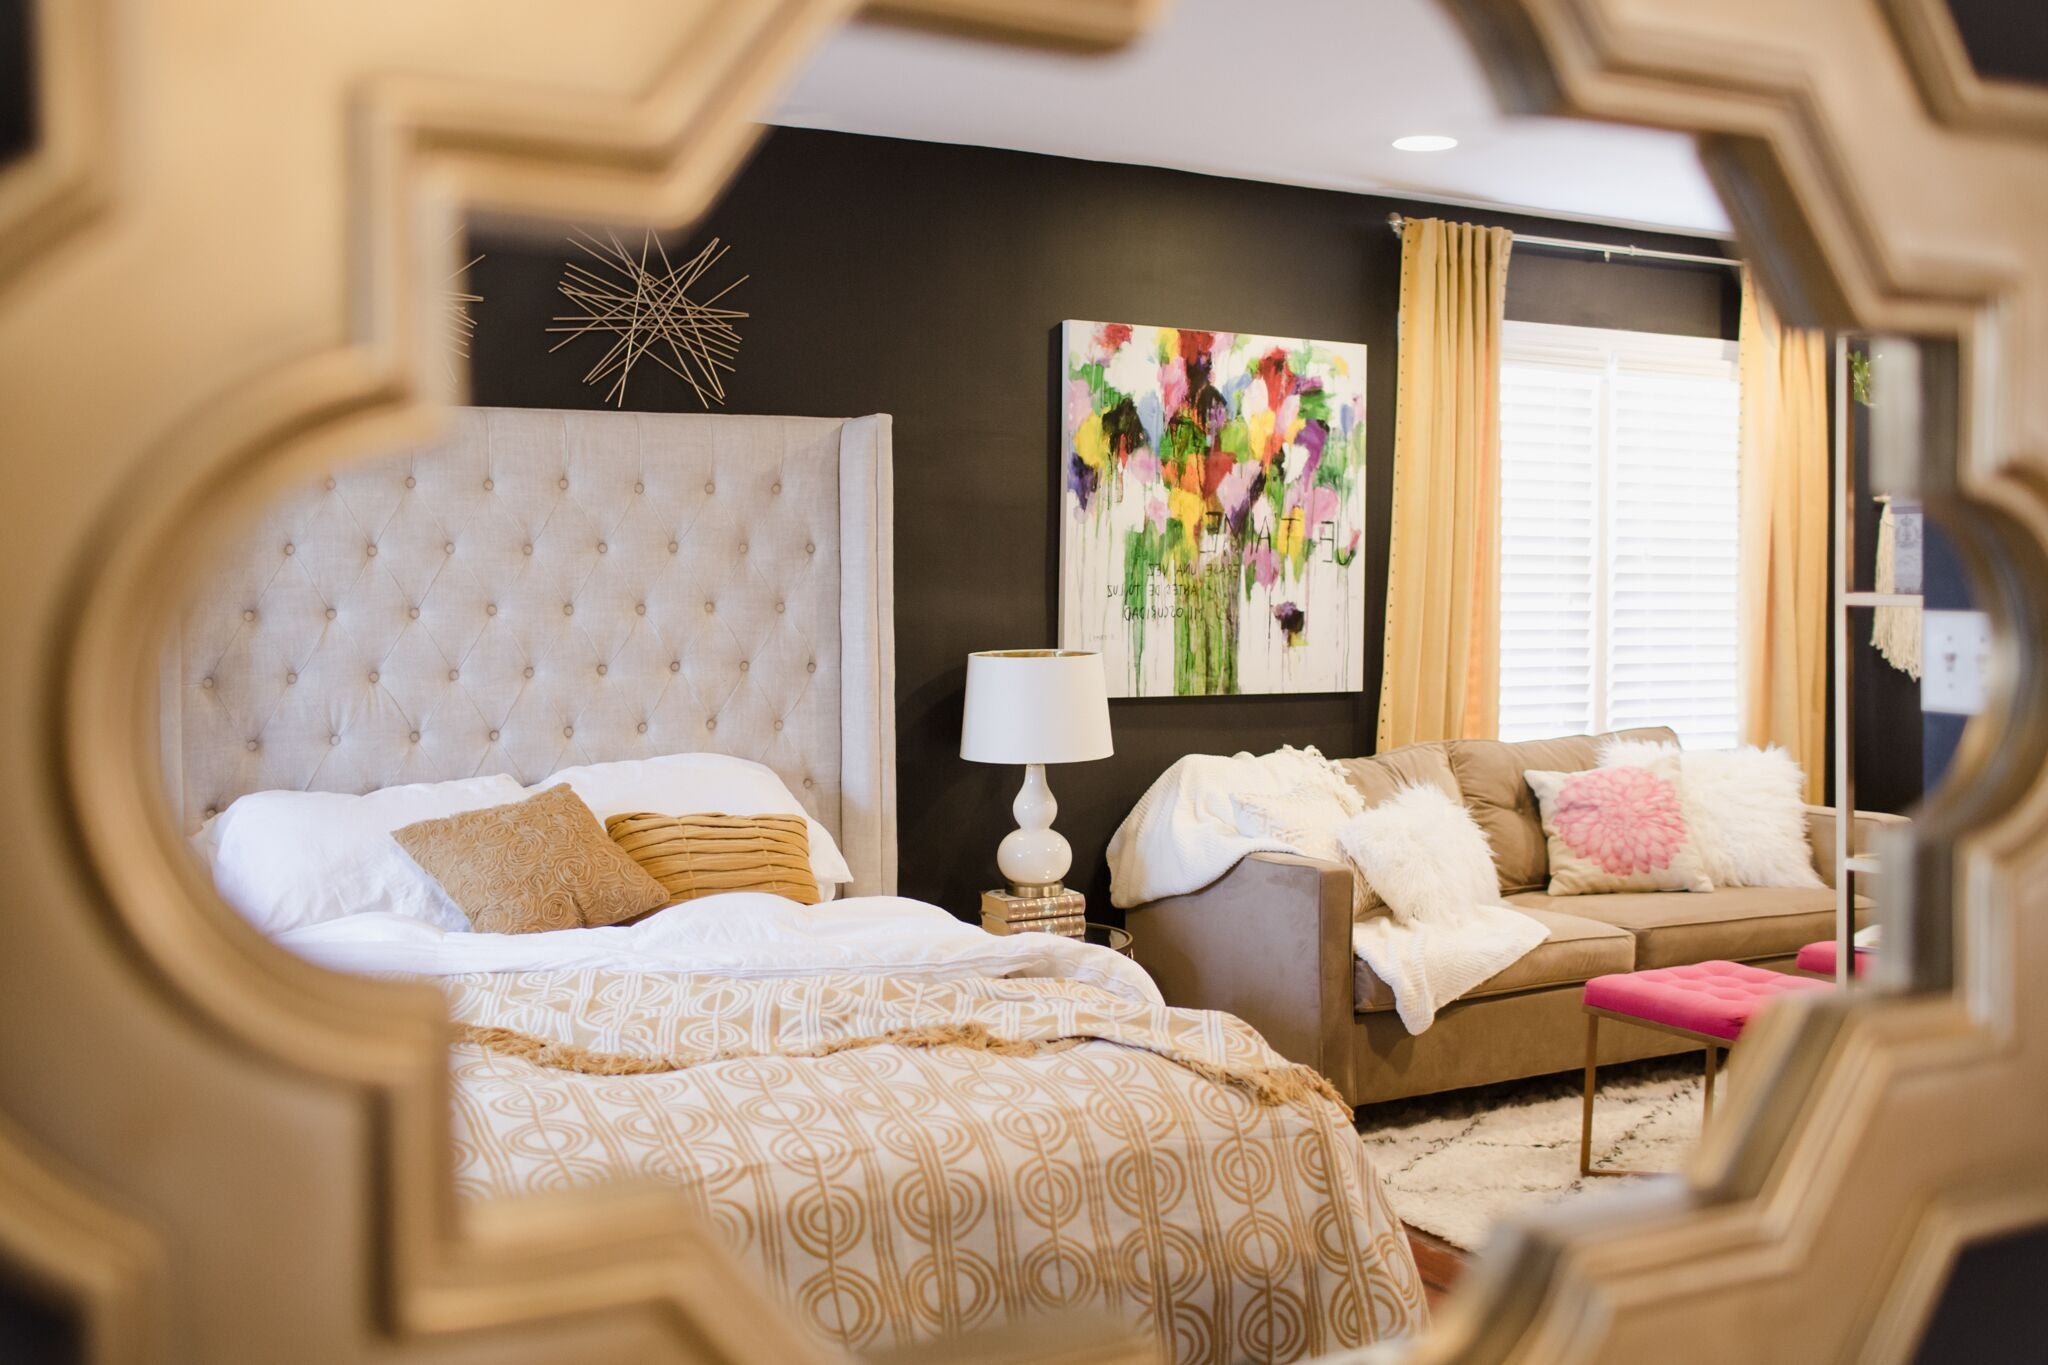 girly chic bedroom design on astral riles blog